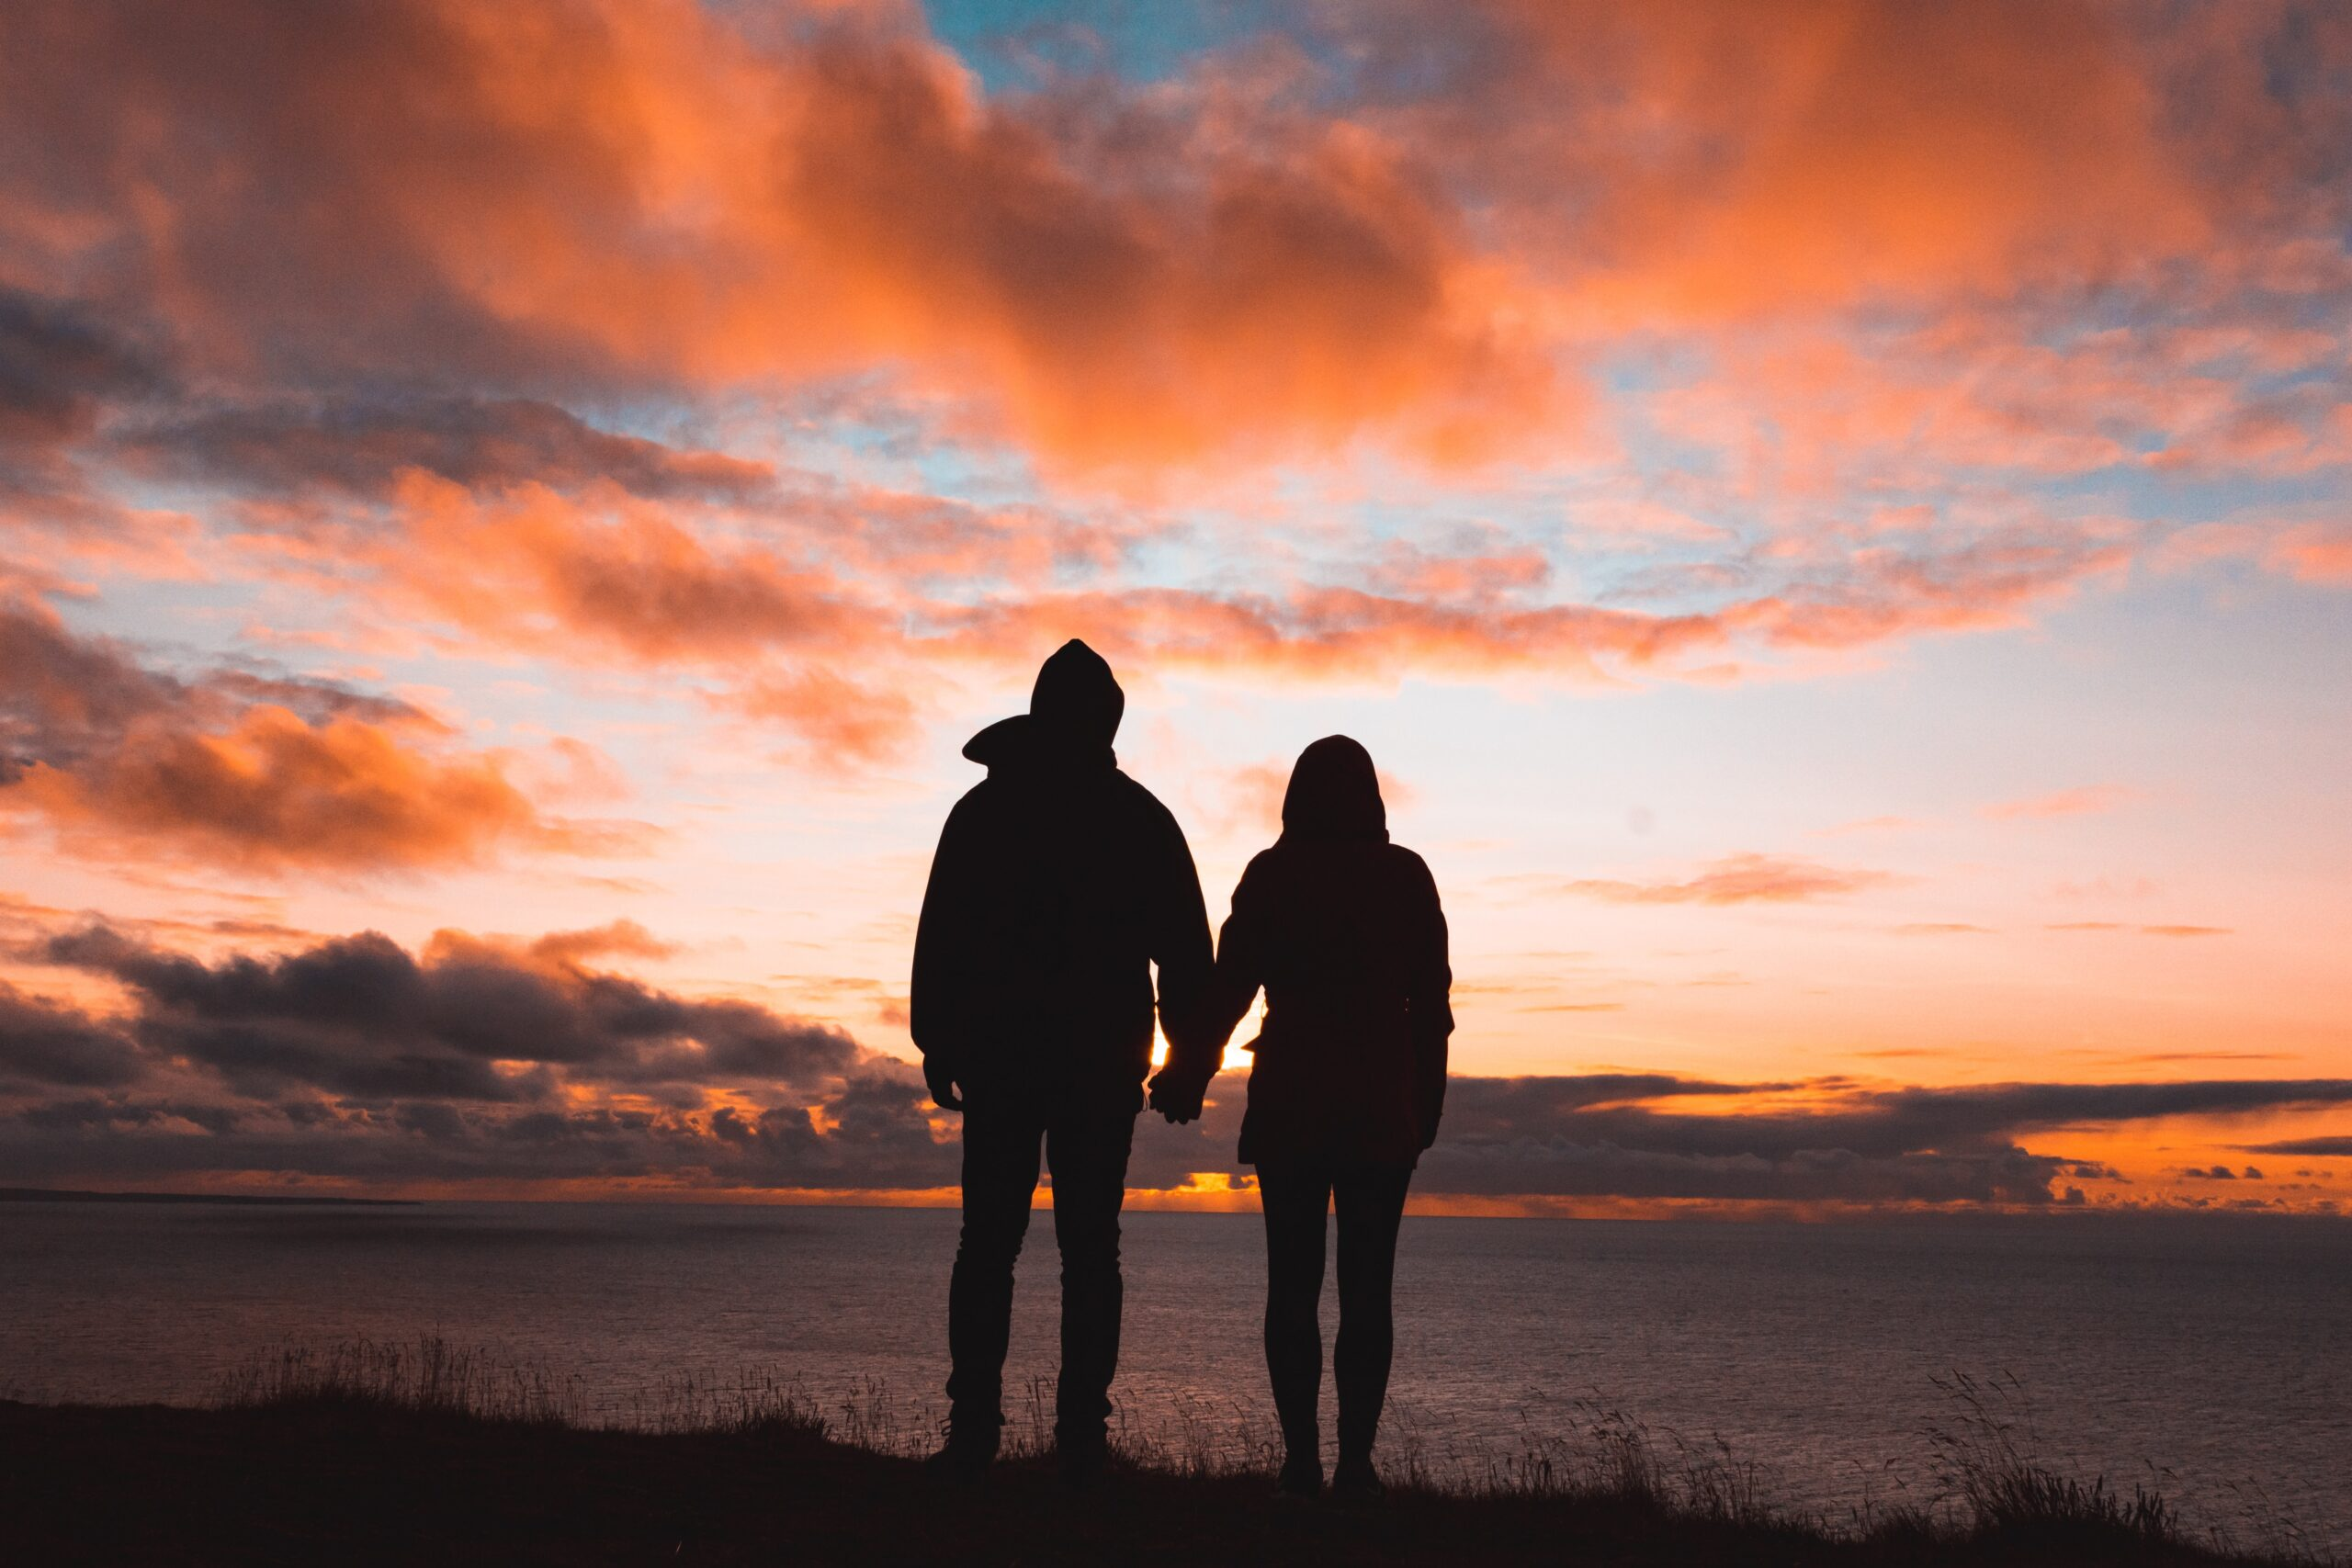 In a relationship, the biggest mistake we make: